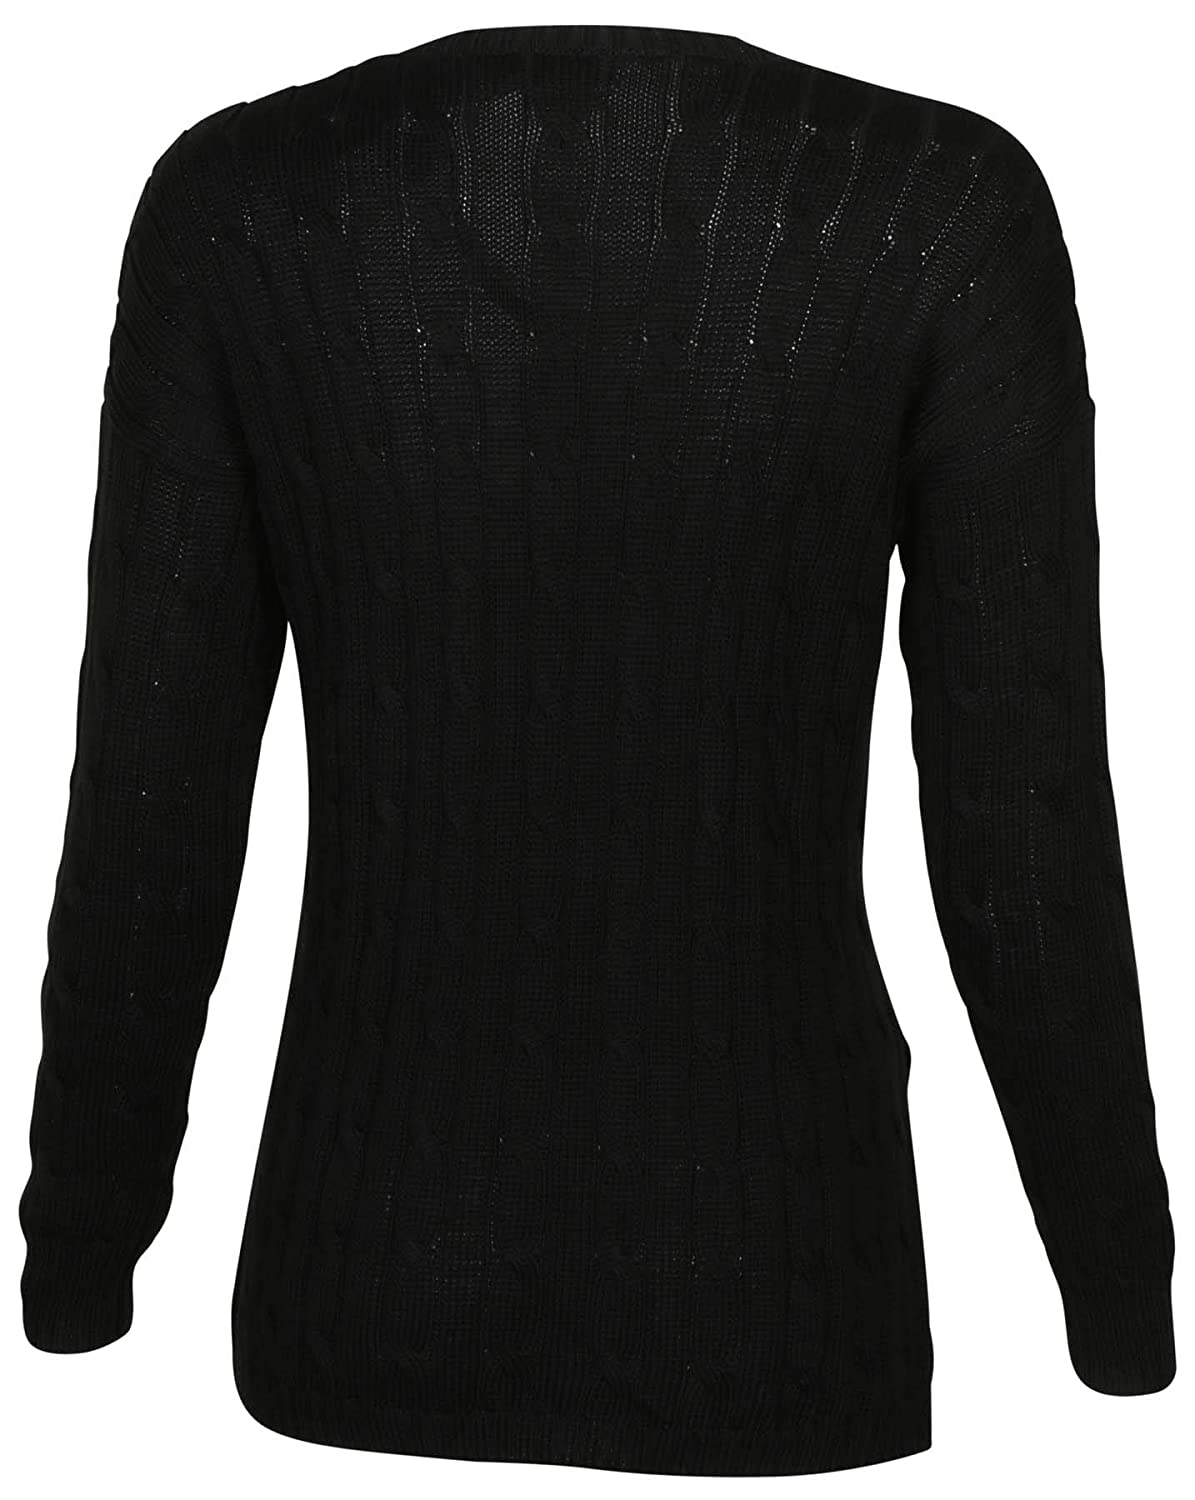 73f125a8defc9 Polo Ralph Lauren Womens Pima Cotton V-Neck Sweater at Amazon Women s  Clothing store